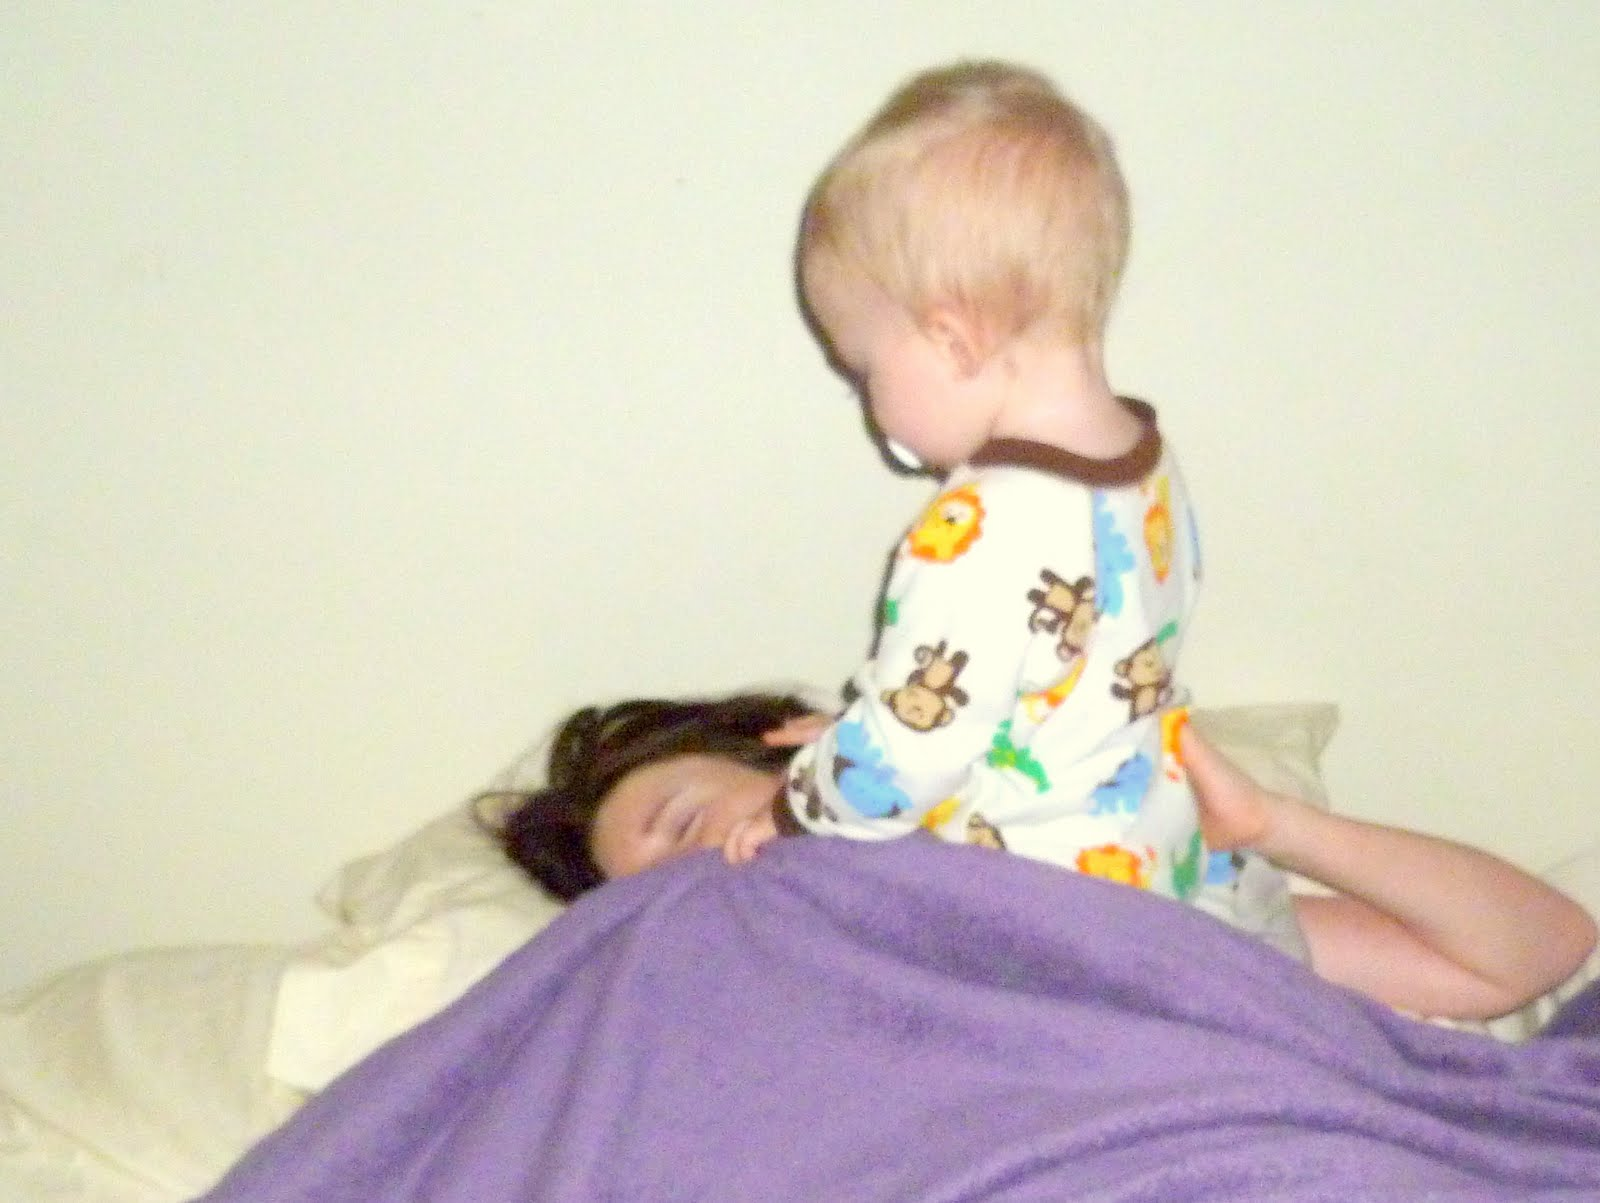 child waking up - photo #40